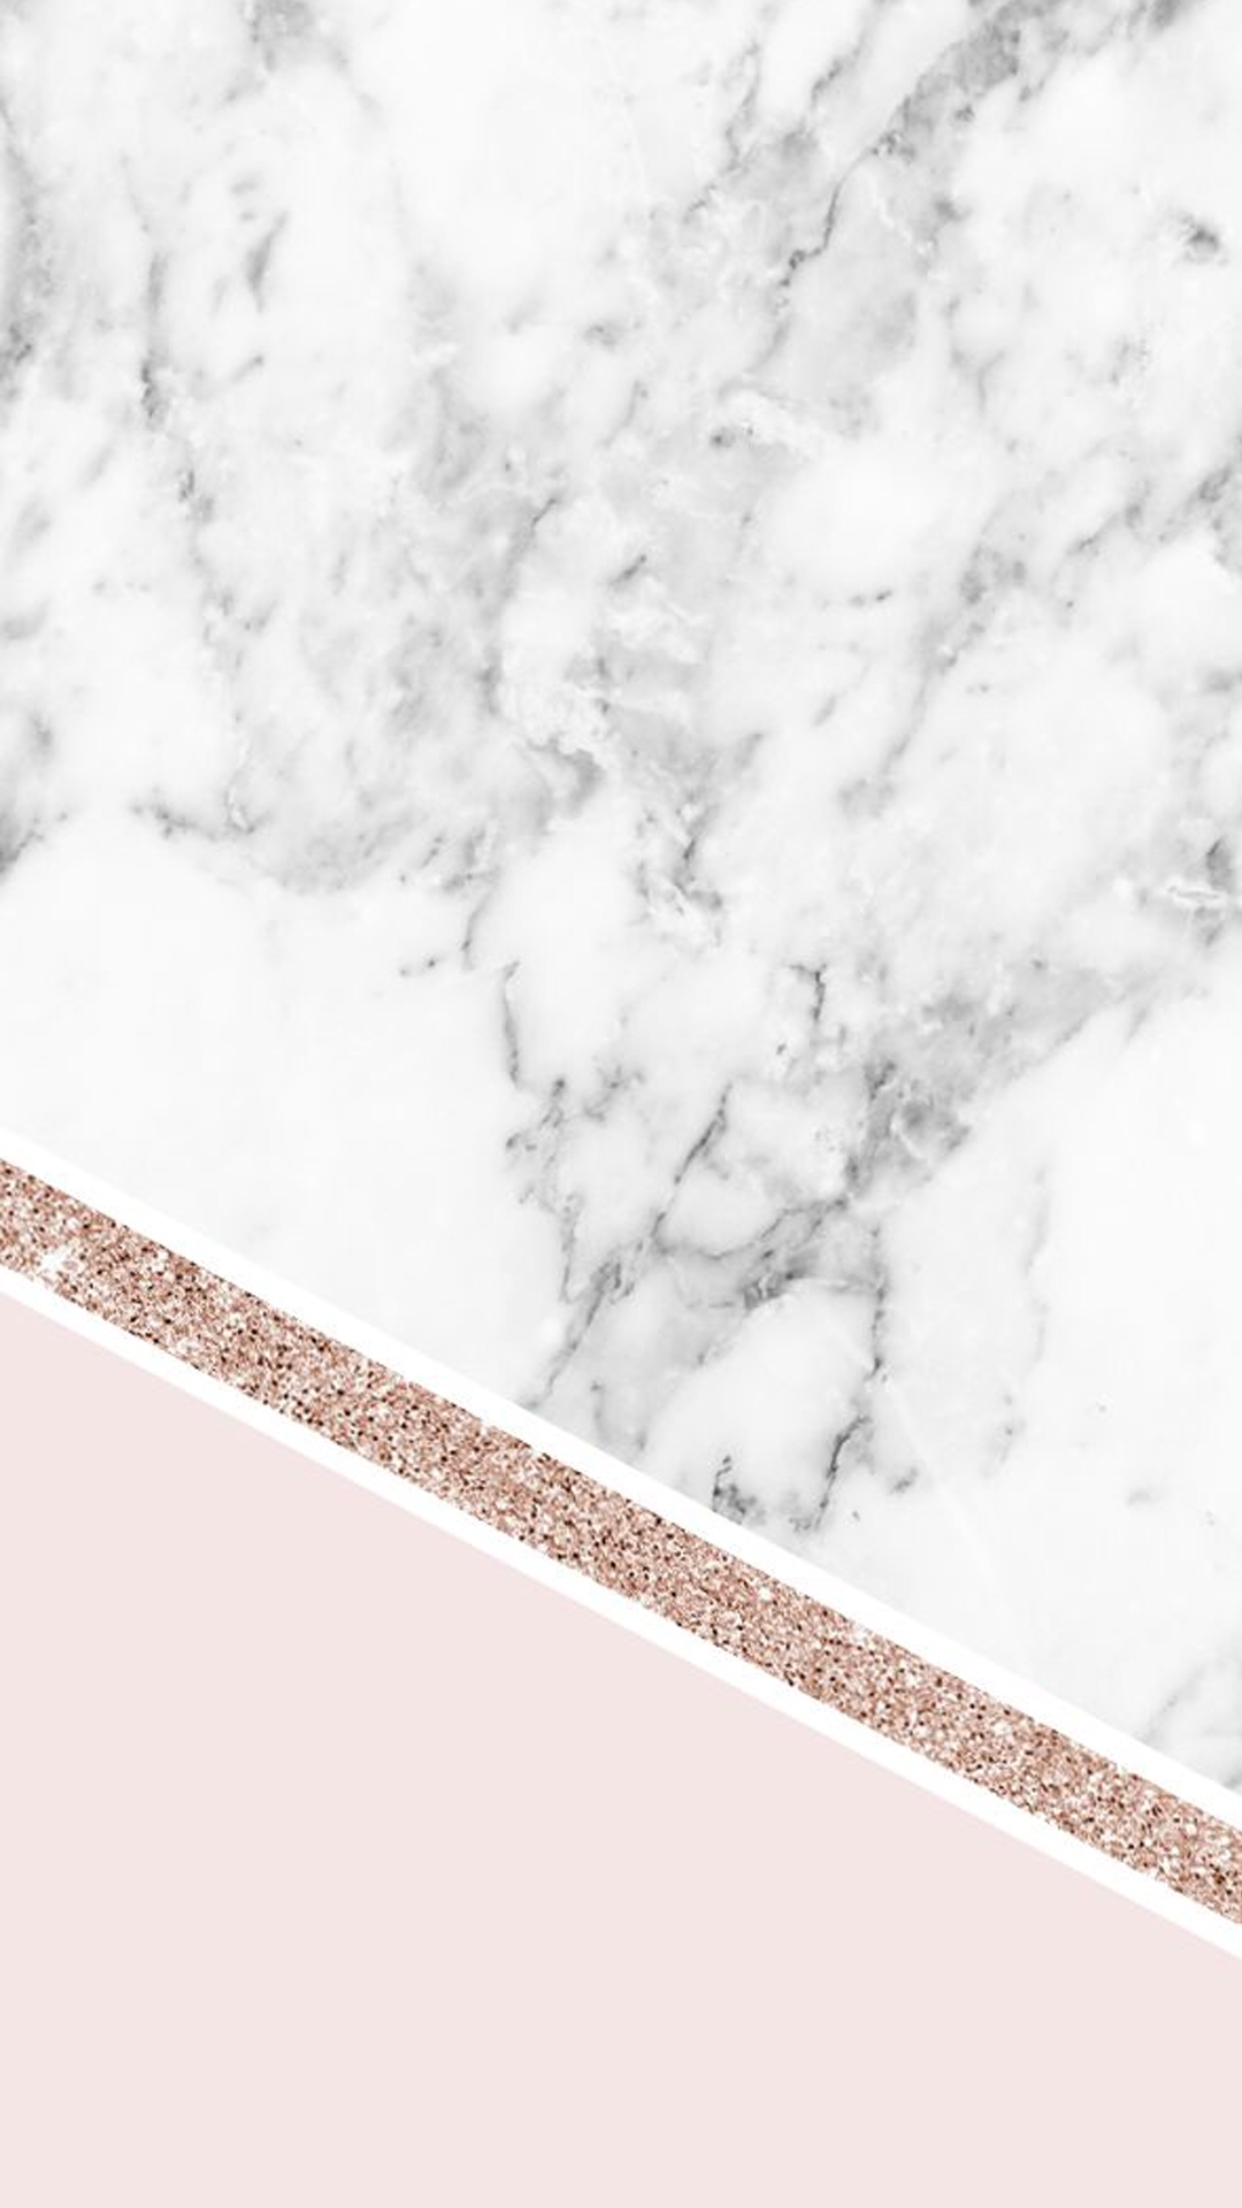 Marble And Rose Gold Marble Iphone Wallpaper Gold Marble Wallpaper Rose Gold Marble Wallpaper